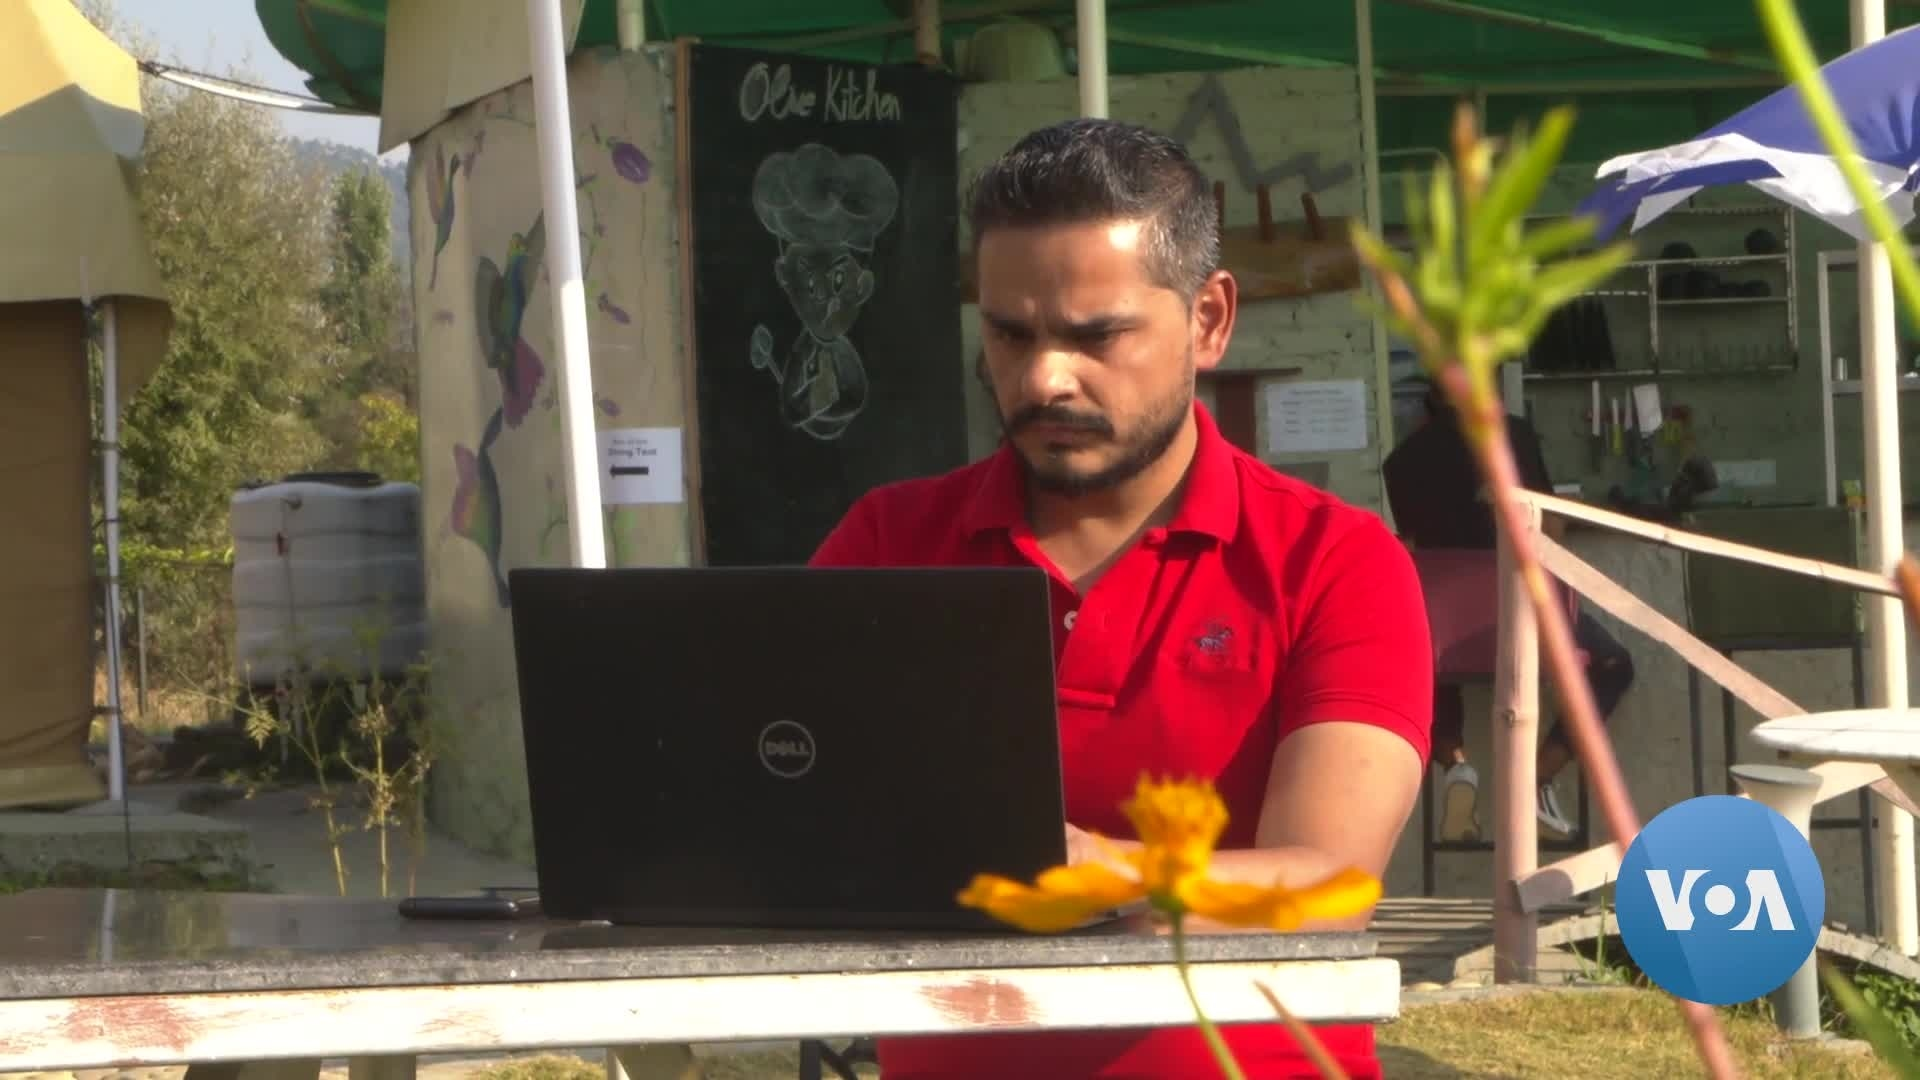 Indian Professionals Abandon COVID-Scarred Cities to Work From Scenic Towns